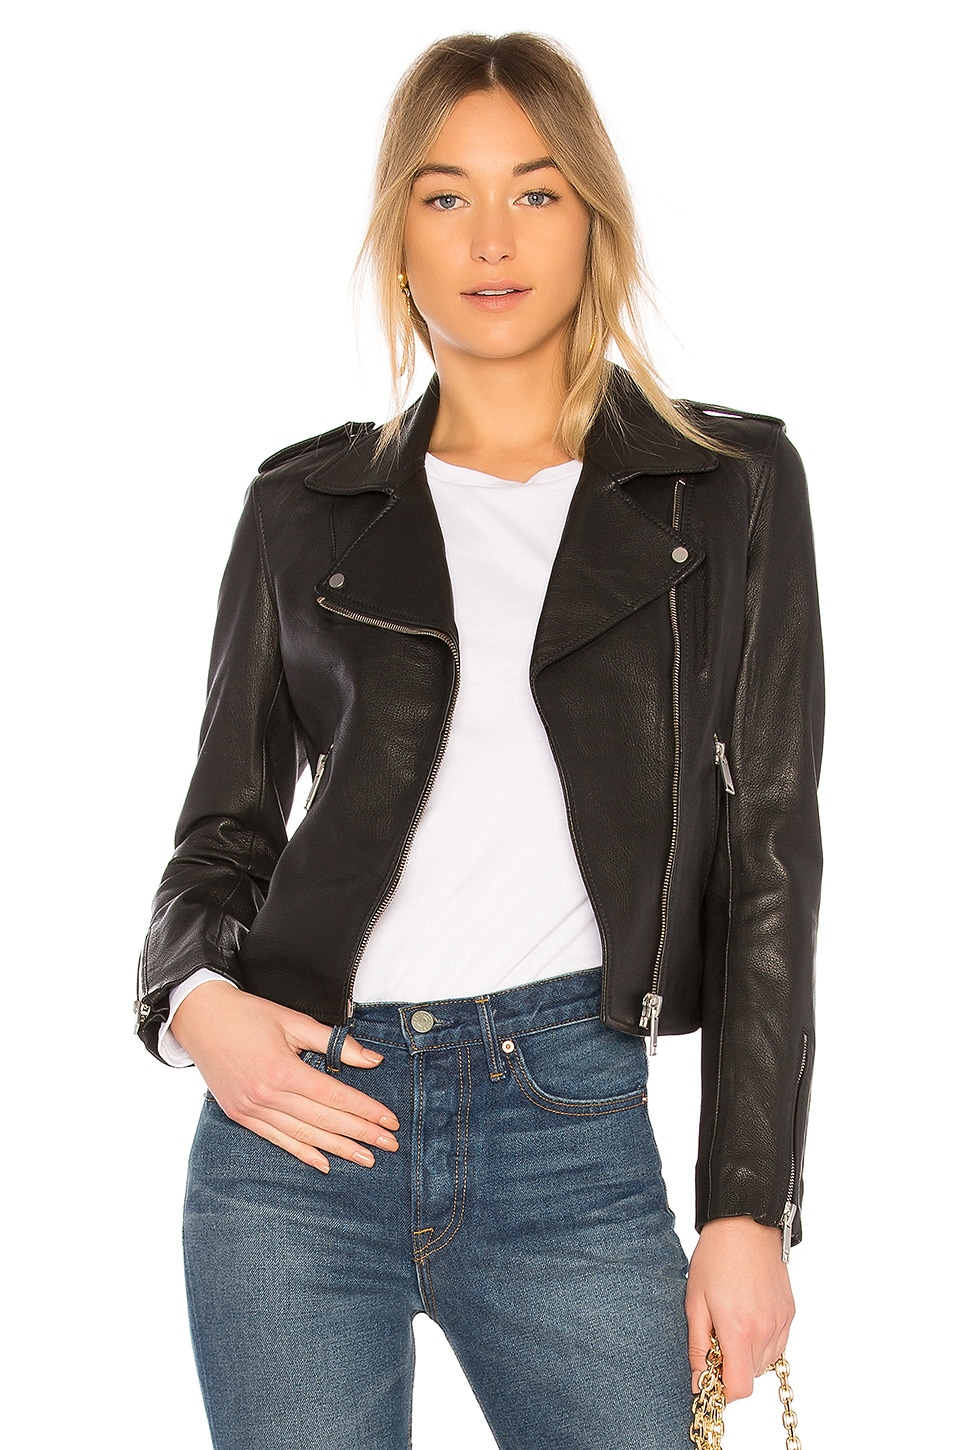 LTH JKT Kas Biker Jacket in Black